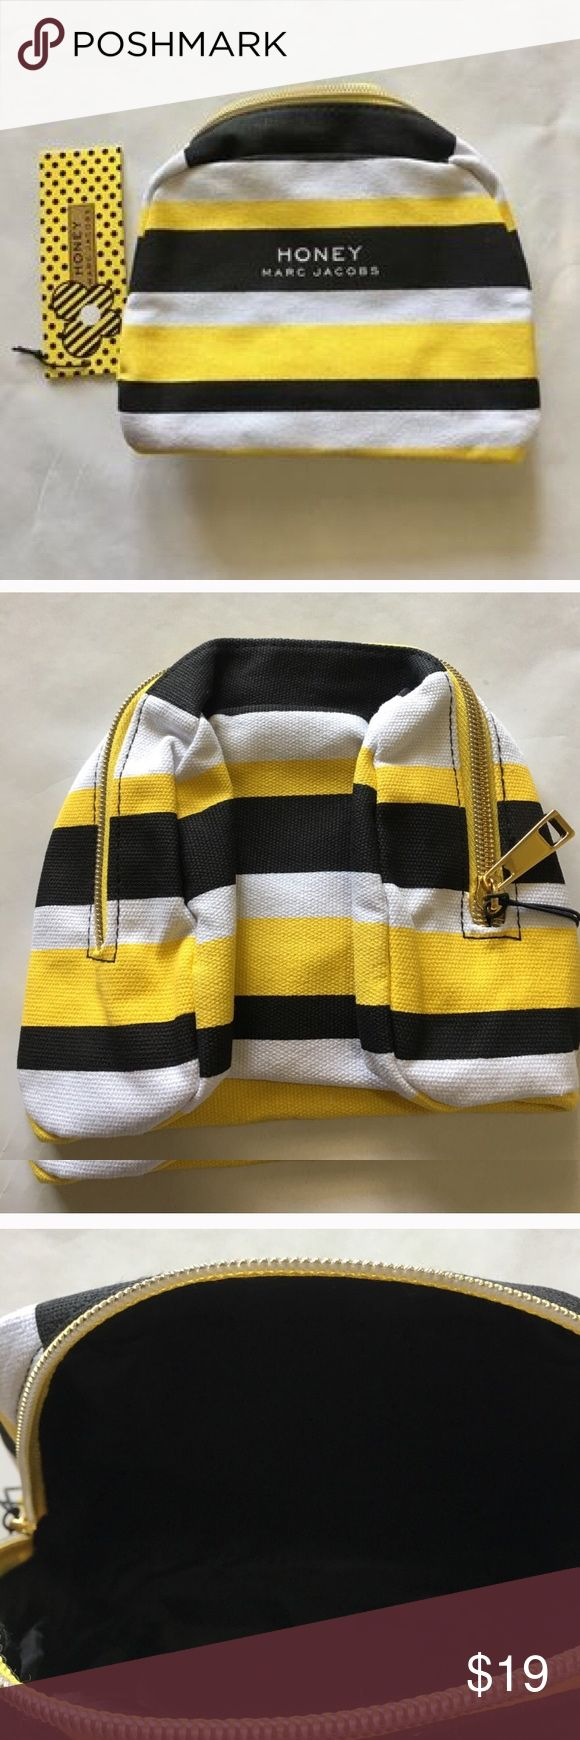 """🐝 MARC JACOBS """"Honey"""" striped cosmetics bag 🐝 Brand new with original tags. MARC JACOBS logo on front, full zip. Feel free to ask questions. Marc Jacobs Bags Cosmetic Bags & Cases"""